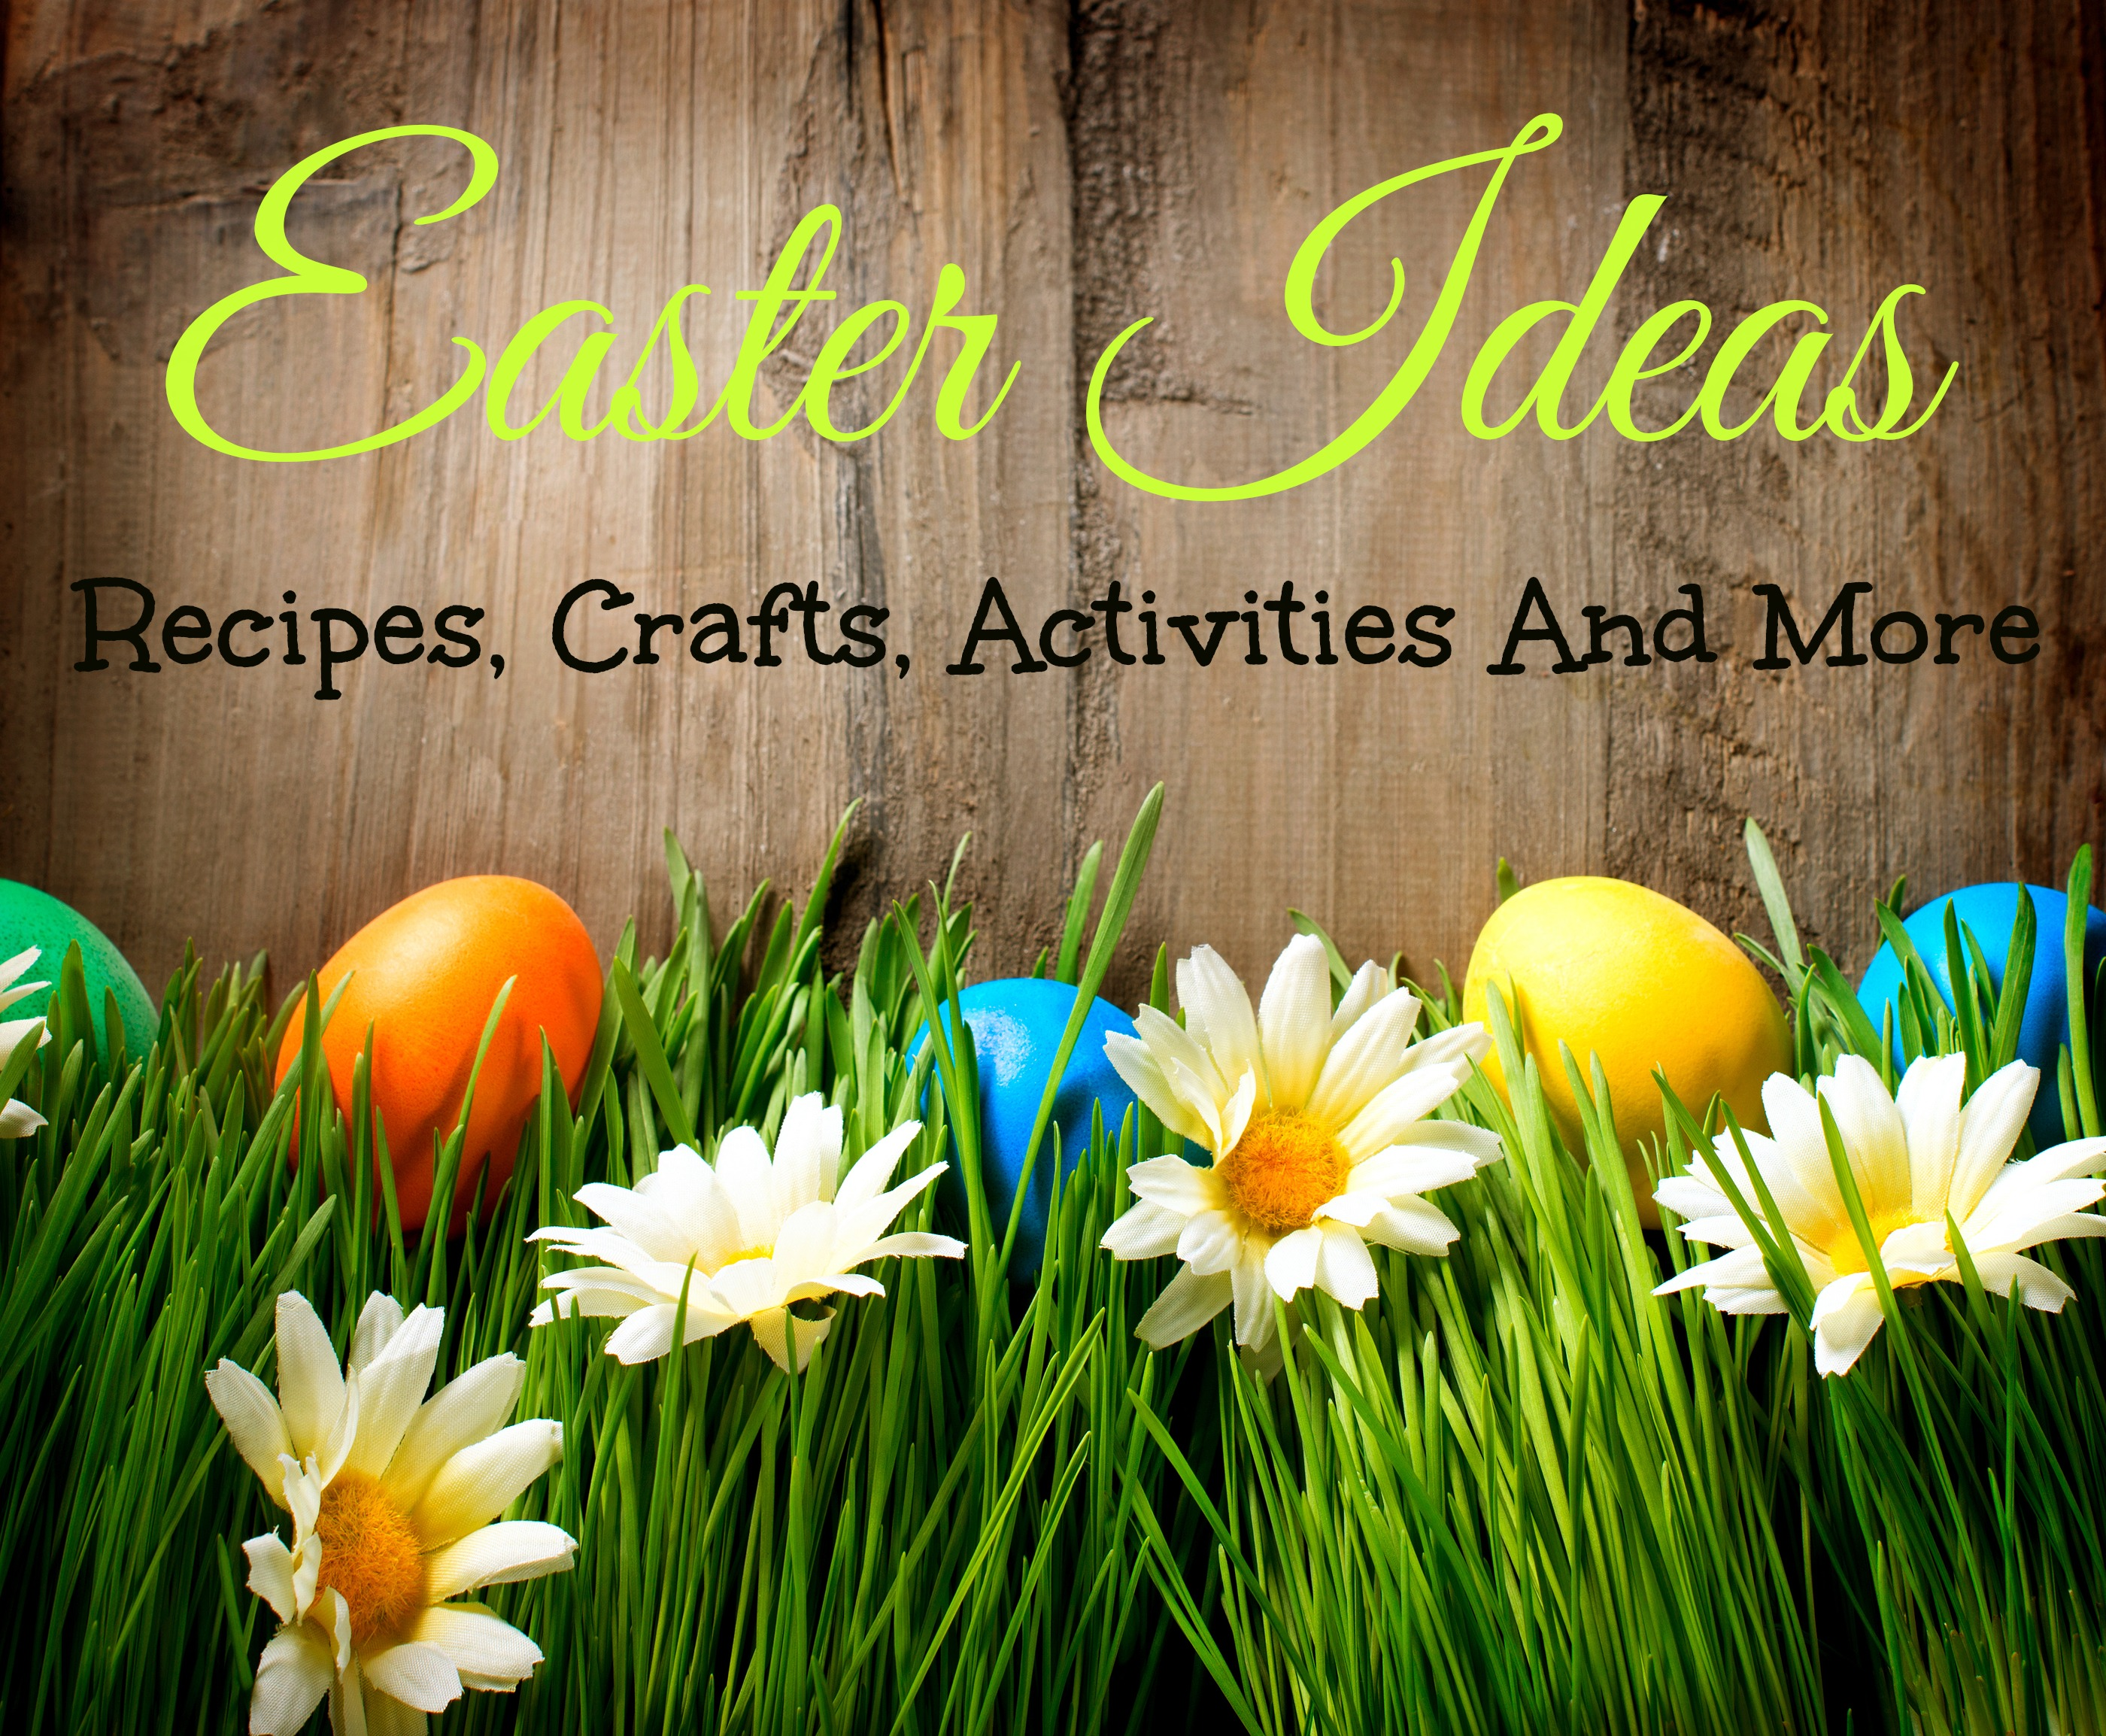 Easter Ideas Recipes Crafts Coupons And More